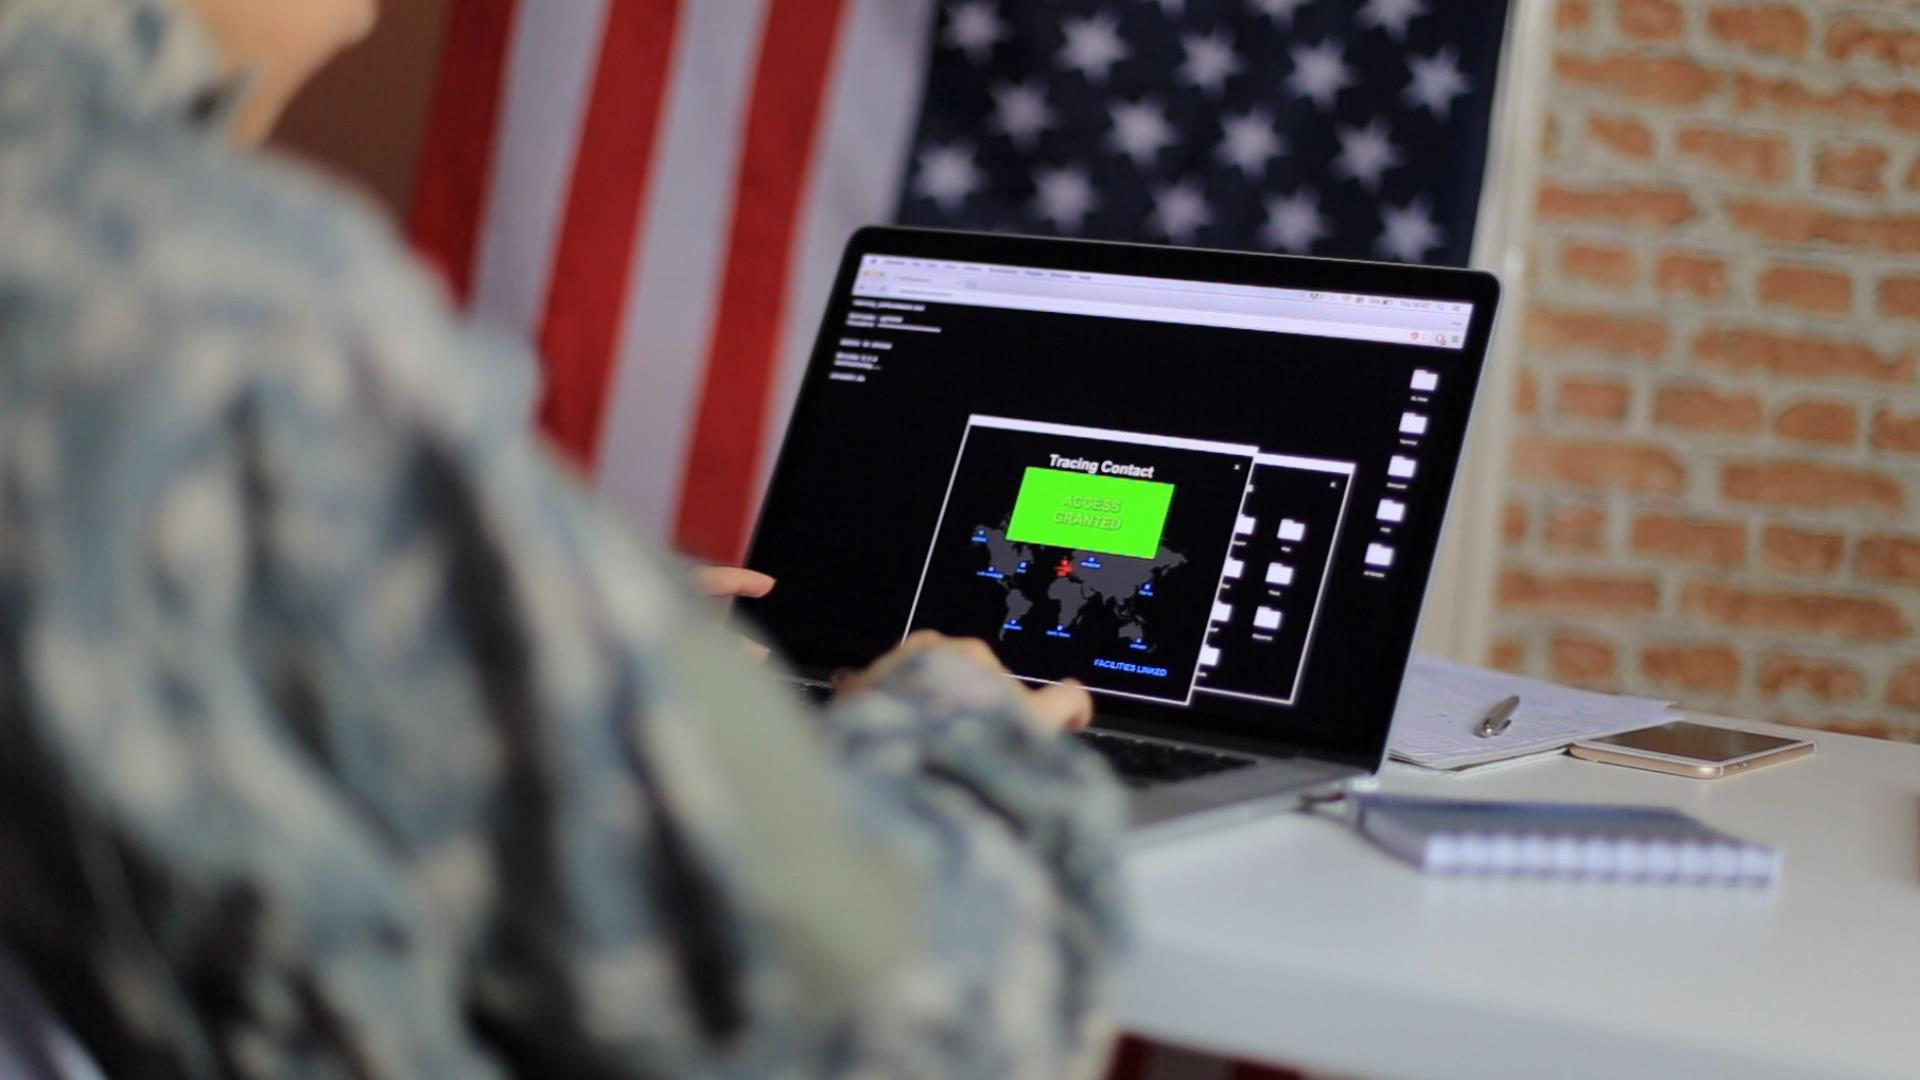 Coding boot camps are training veterans for jobs in the tech industry